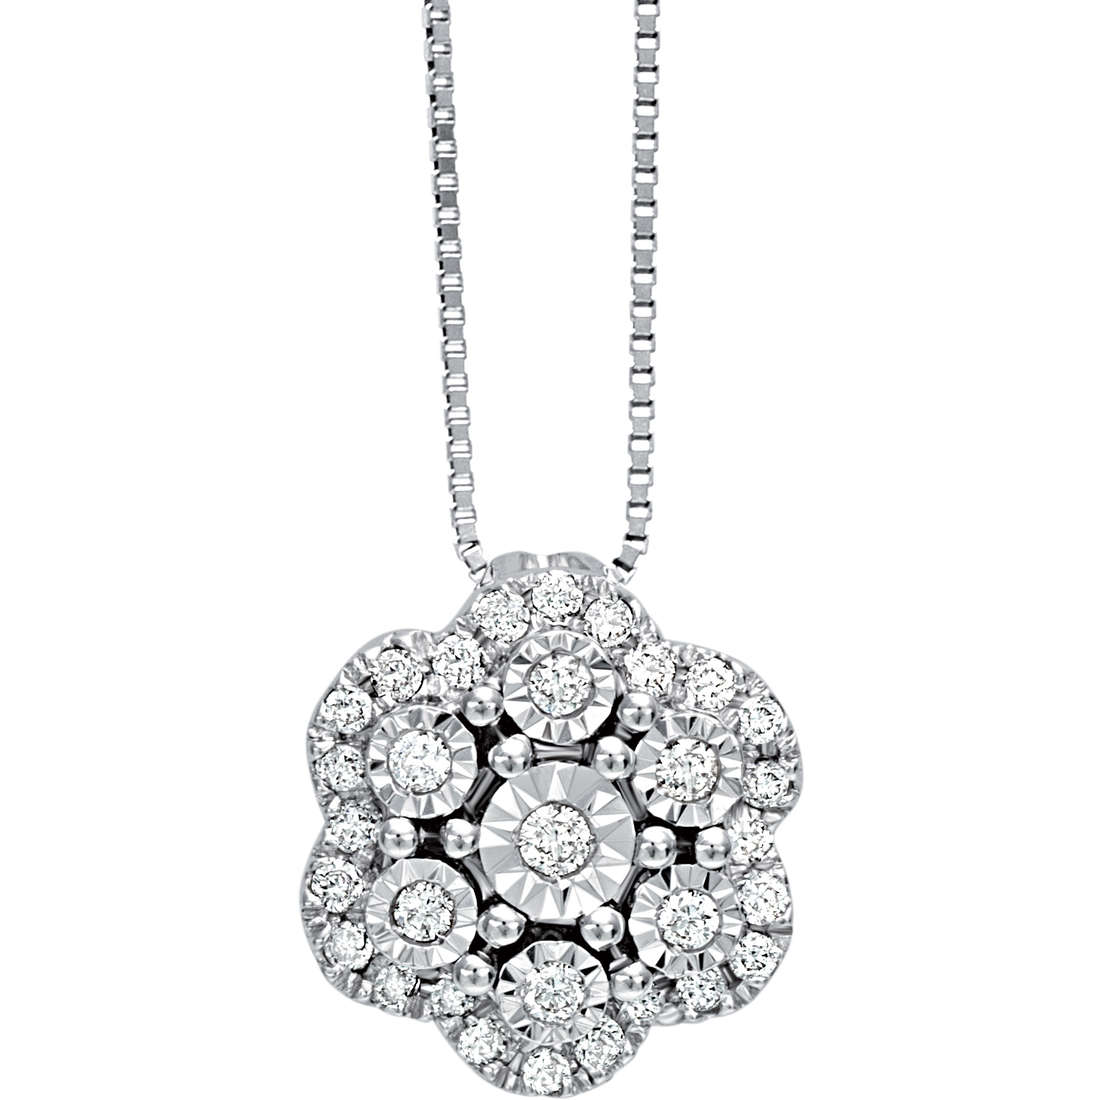 Bliss Collierino With diamonds ct 0.14 in White Gold collection. Elixir Ref.20067367